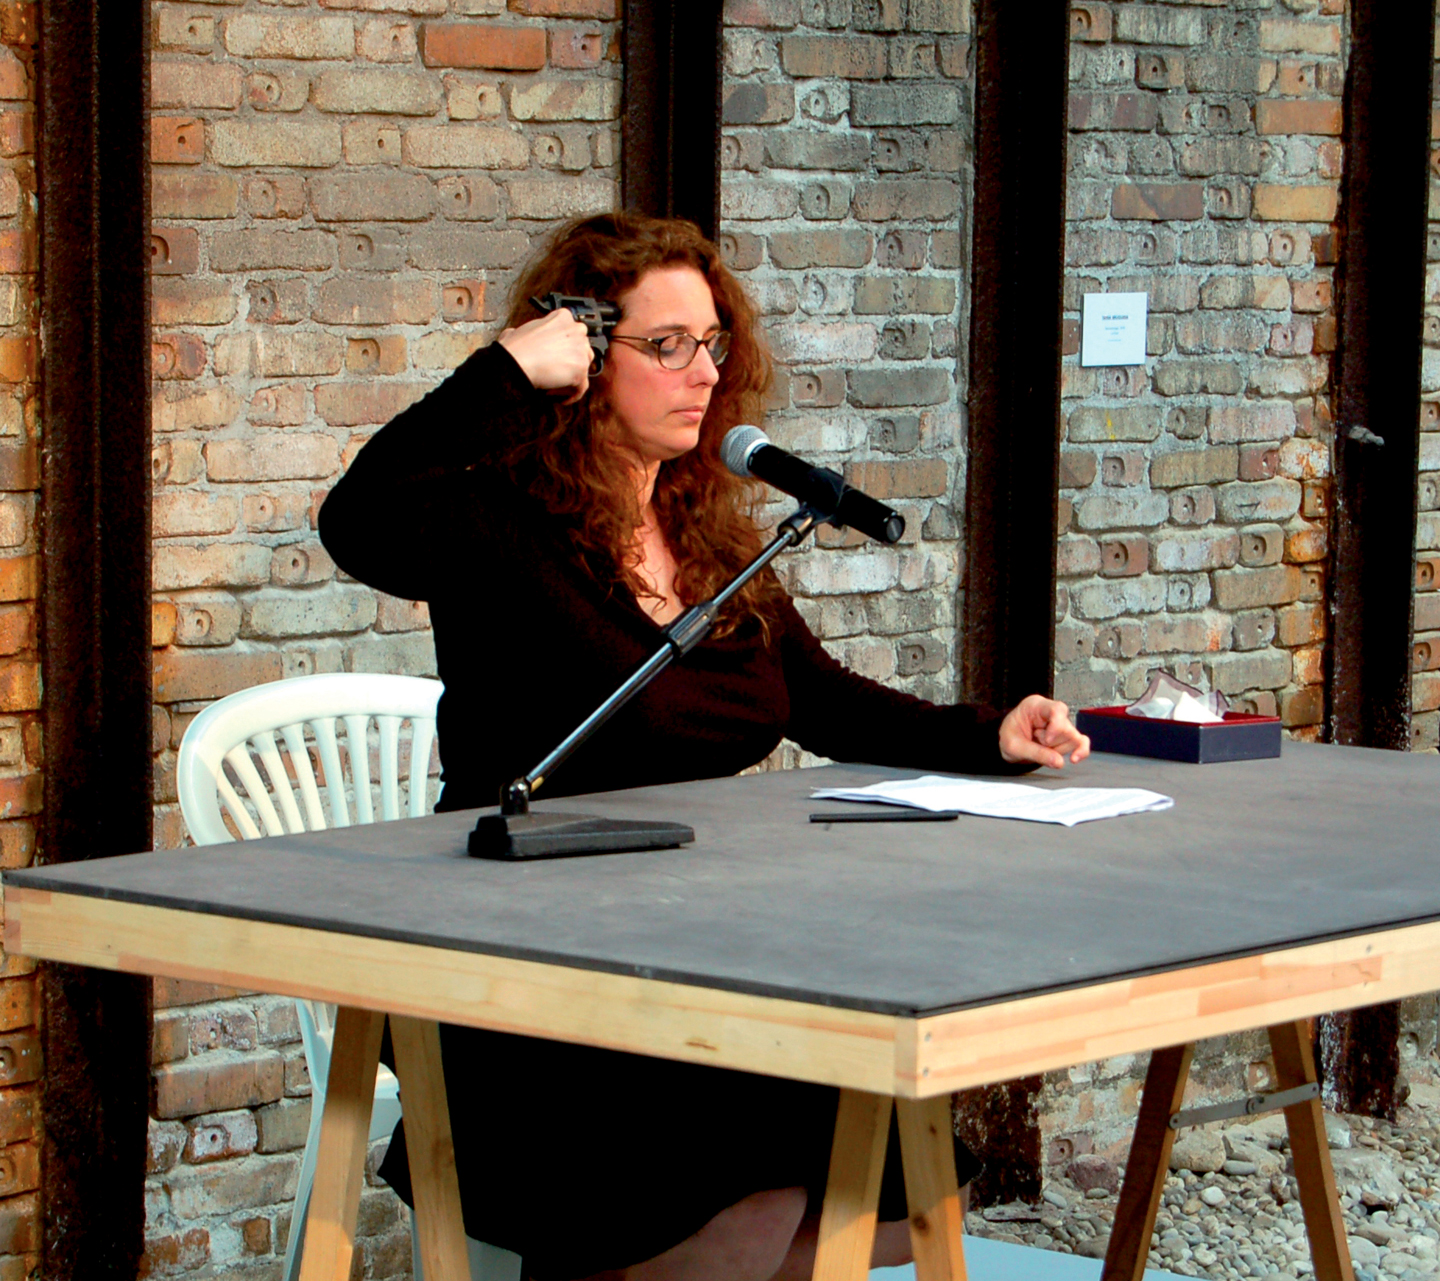 Tania Bruguera, Self- sabotage (Autosabotage), 2009. Courtesy: the artist. Photo: Cesar Delgado Wixen